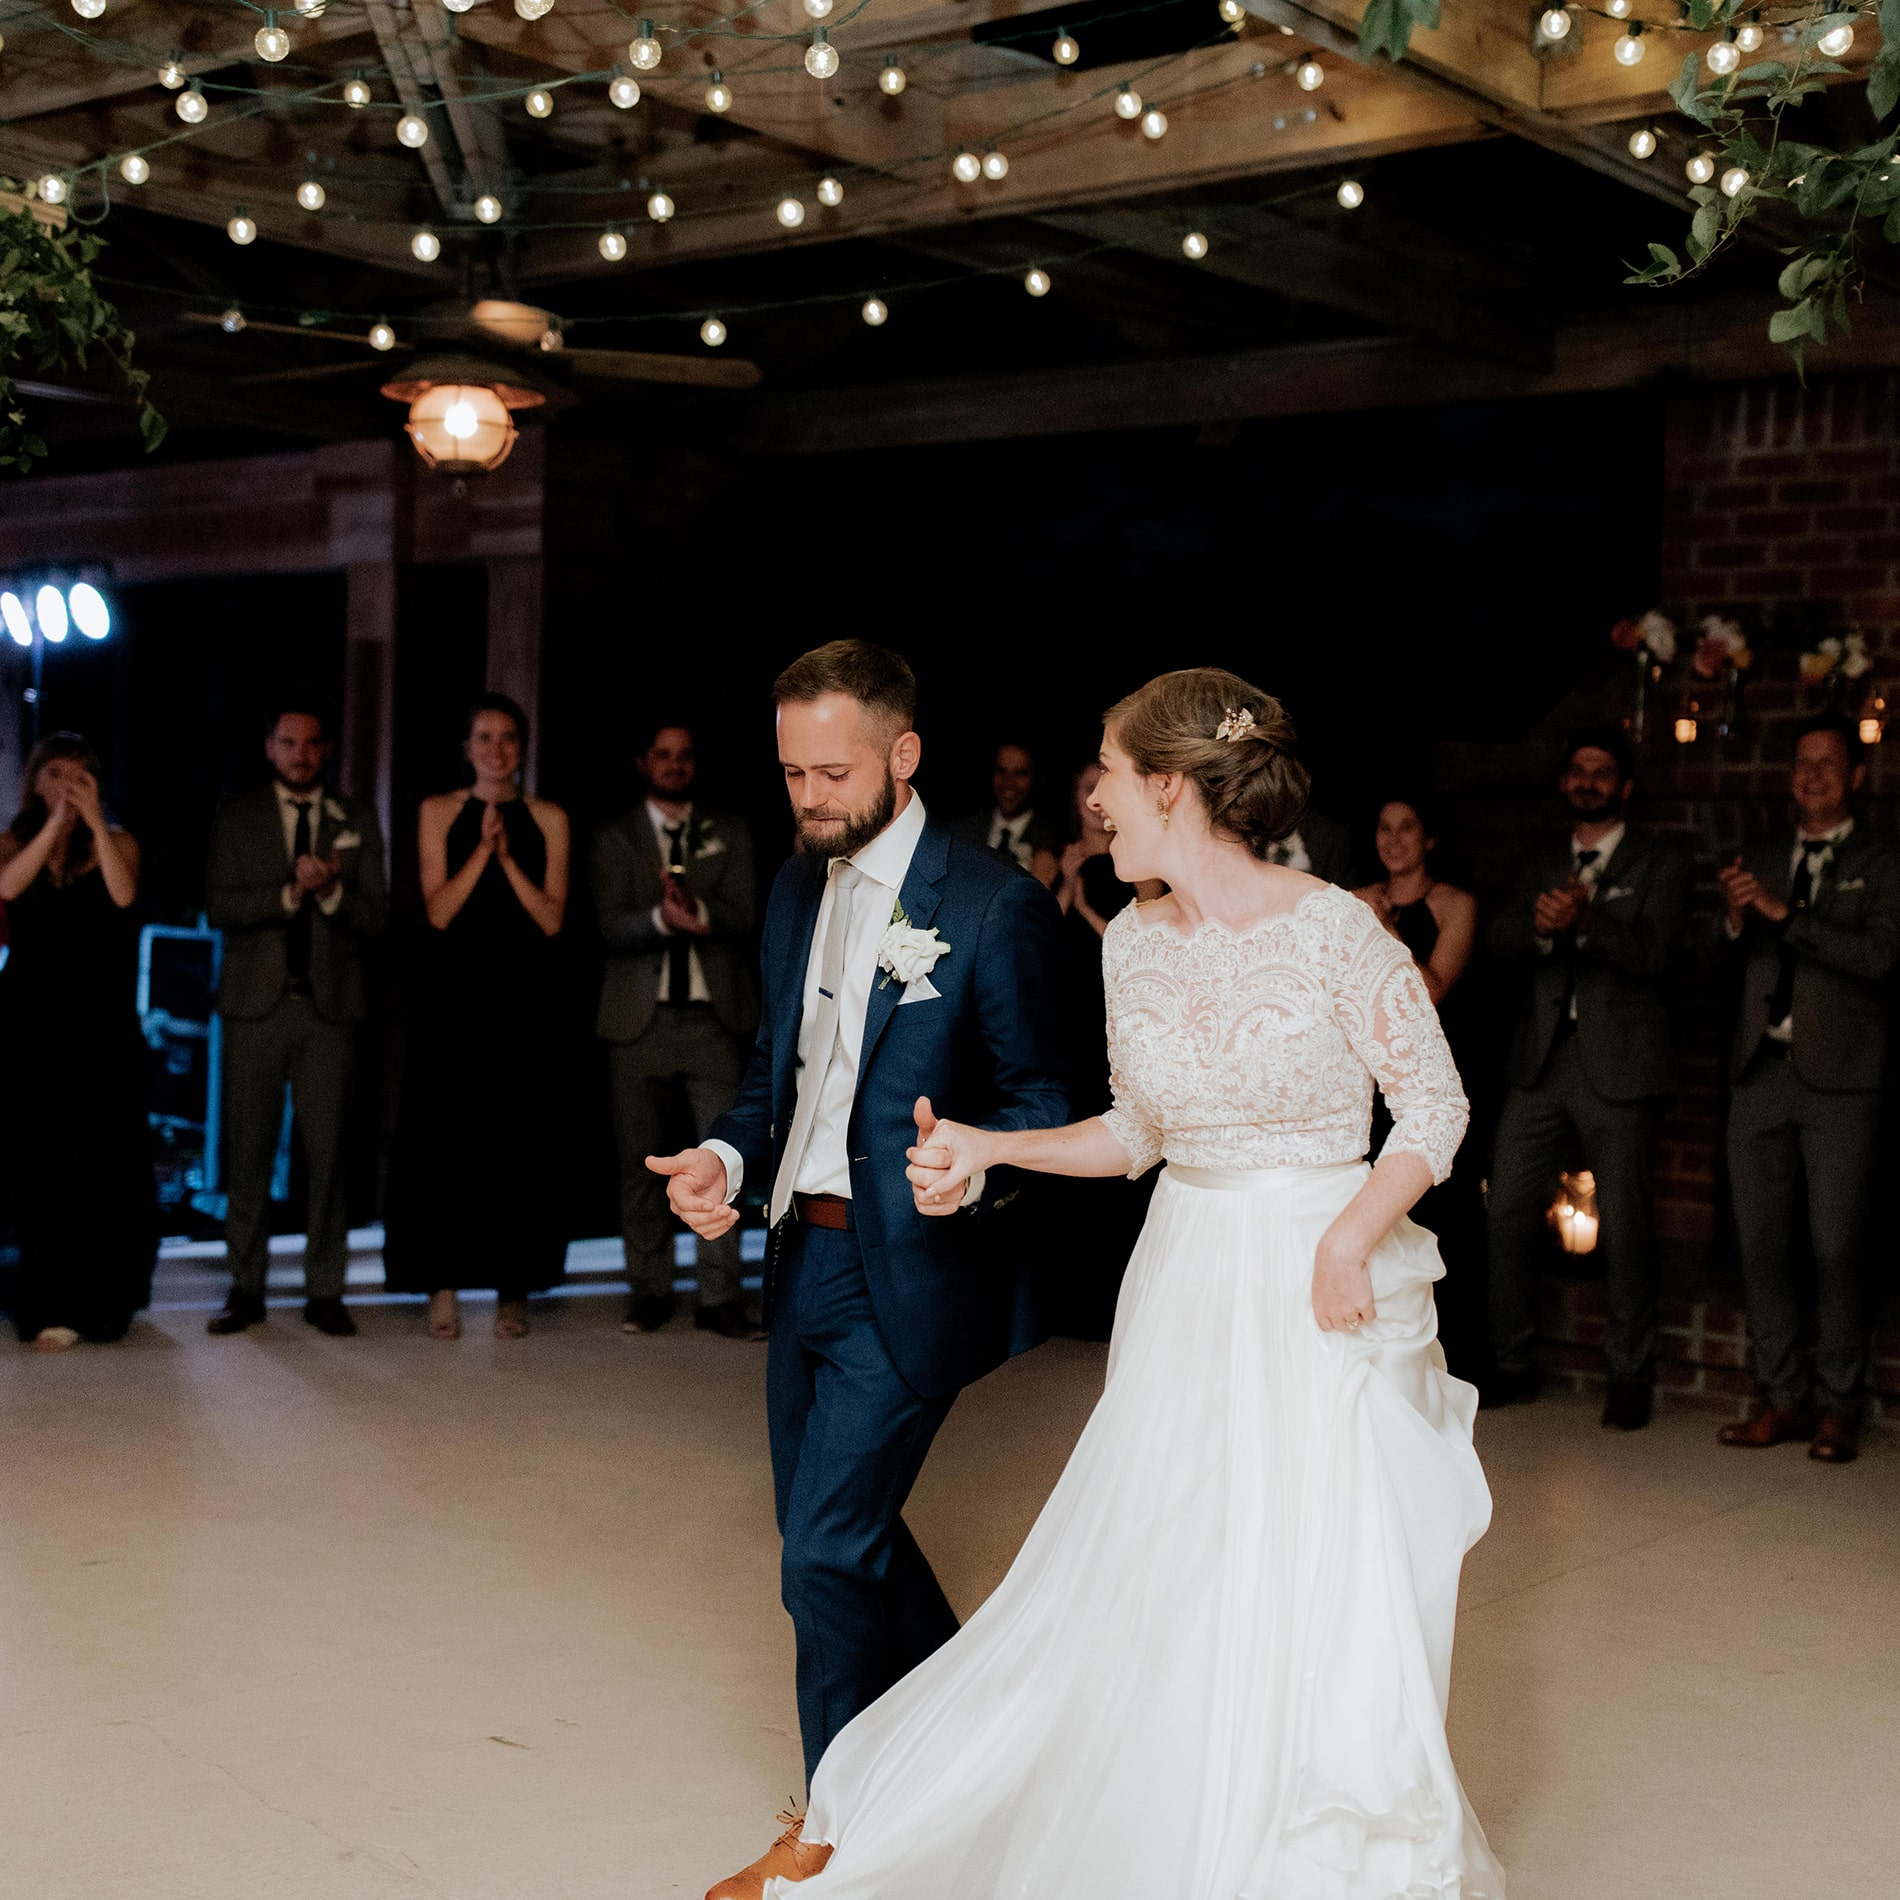 Dance floor at the Mary Grace and Judd Kennedy wedding.